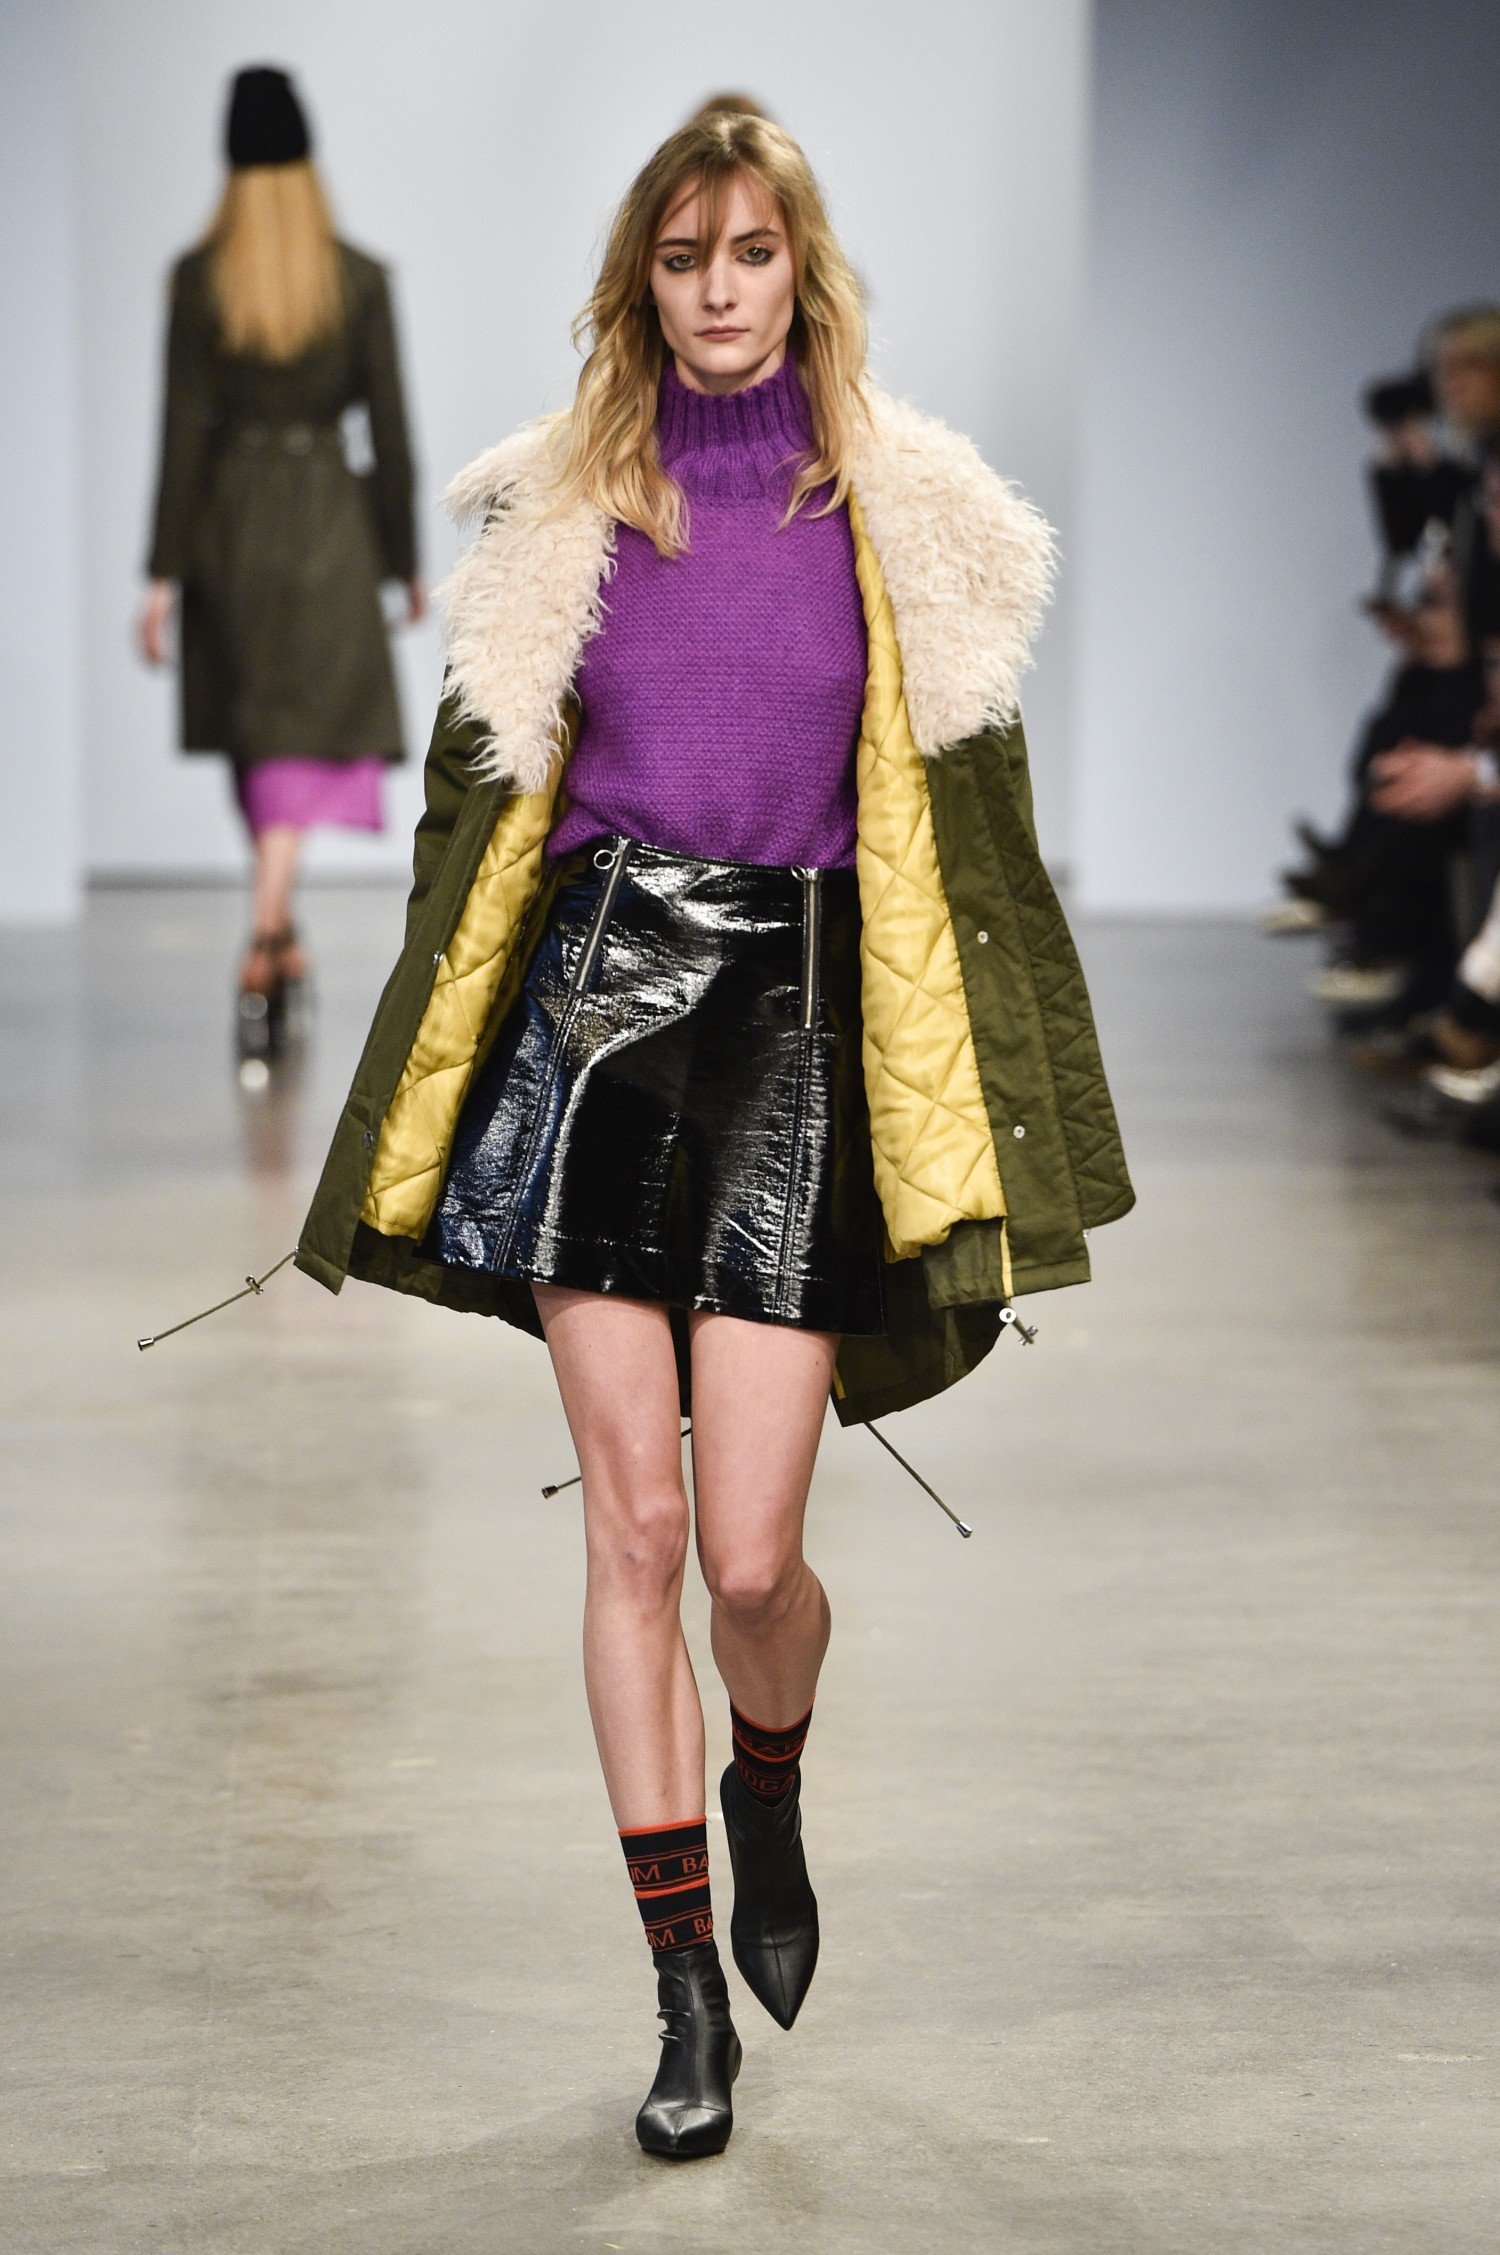 Another very wearable jacket from Baum und Pferdgarten in cordroy and fur trimmings mixed with a patent leather skirt and purple...